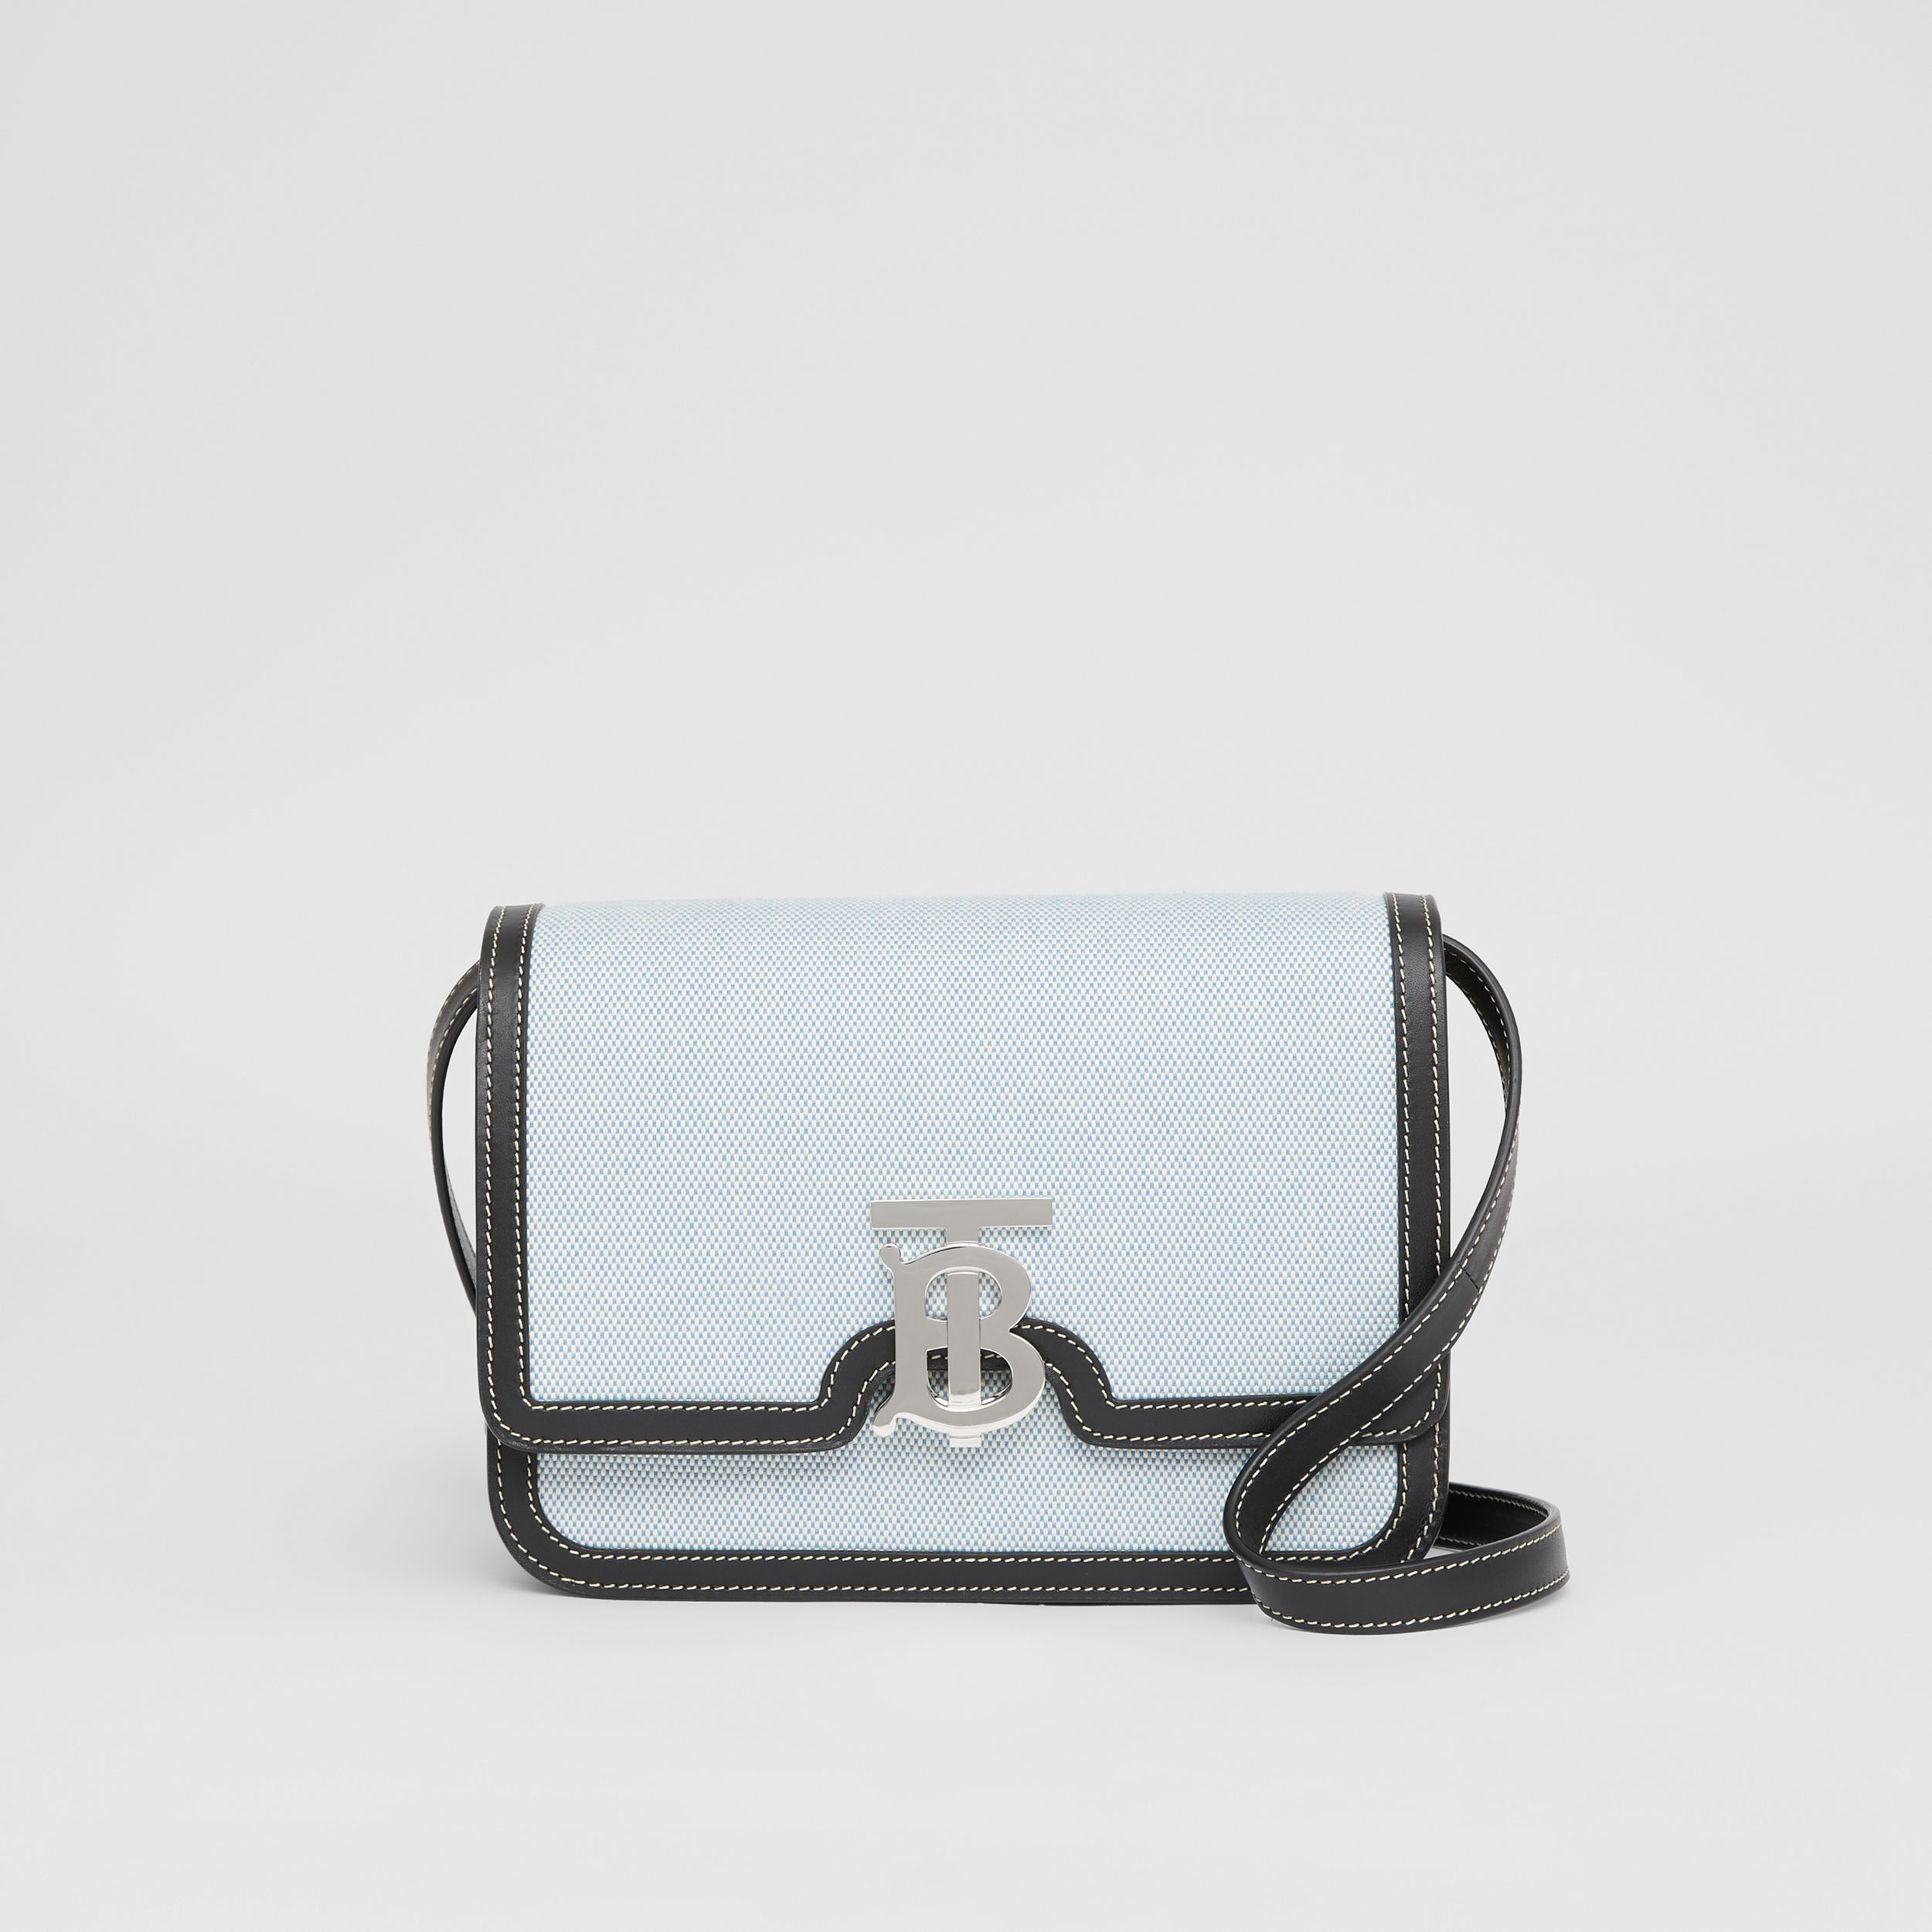 Small Two-tone Canvas and Leather TB Bag in Vivid Cobalt/black - Women | Burberry - 1